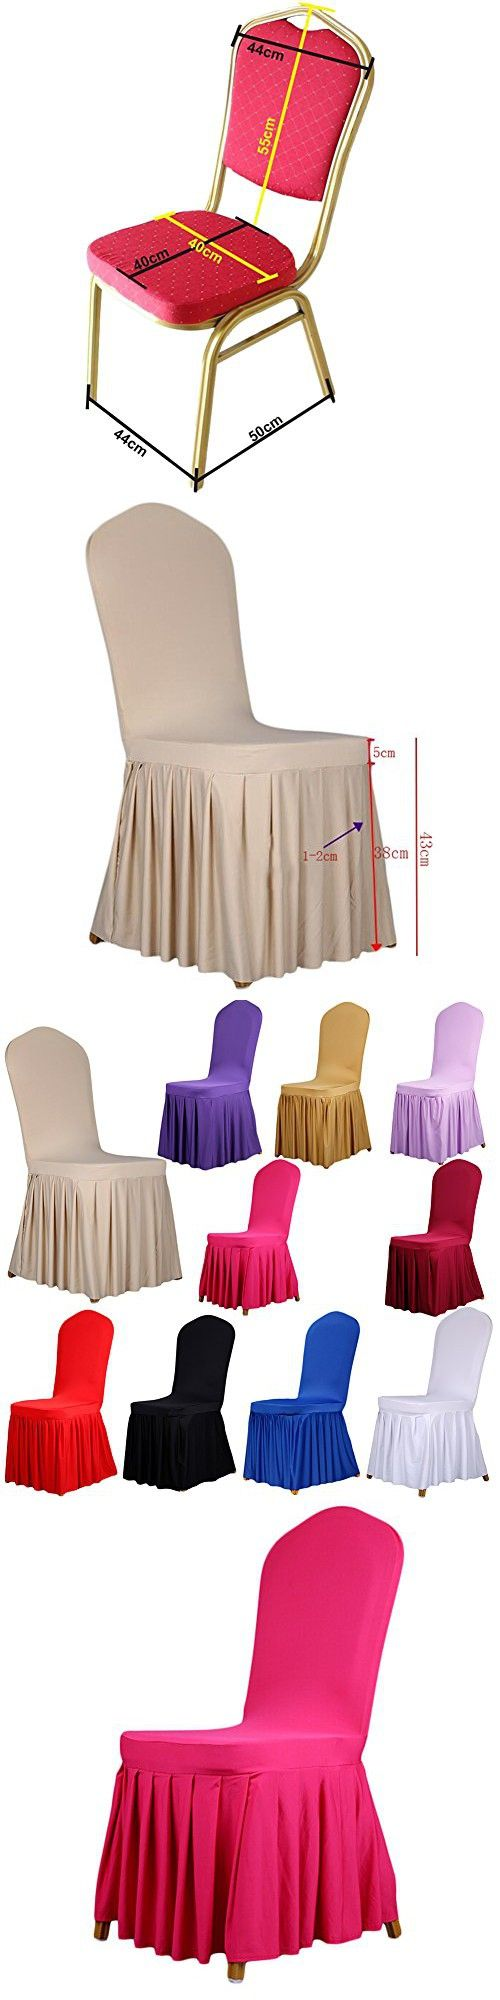 Folding chair covers wholesale under 1 - 1 X Soulfeel Long Stretch Spandex Dining Chair Cover Protectors Super Fit Banquet Chair Seat